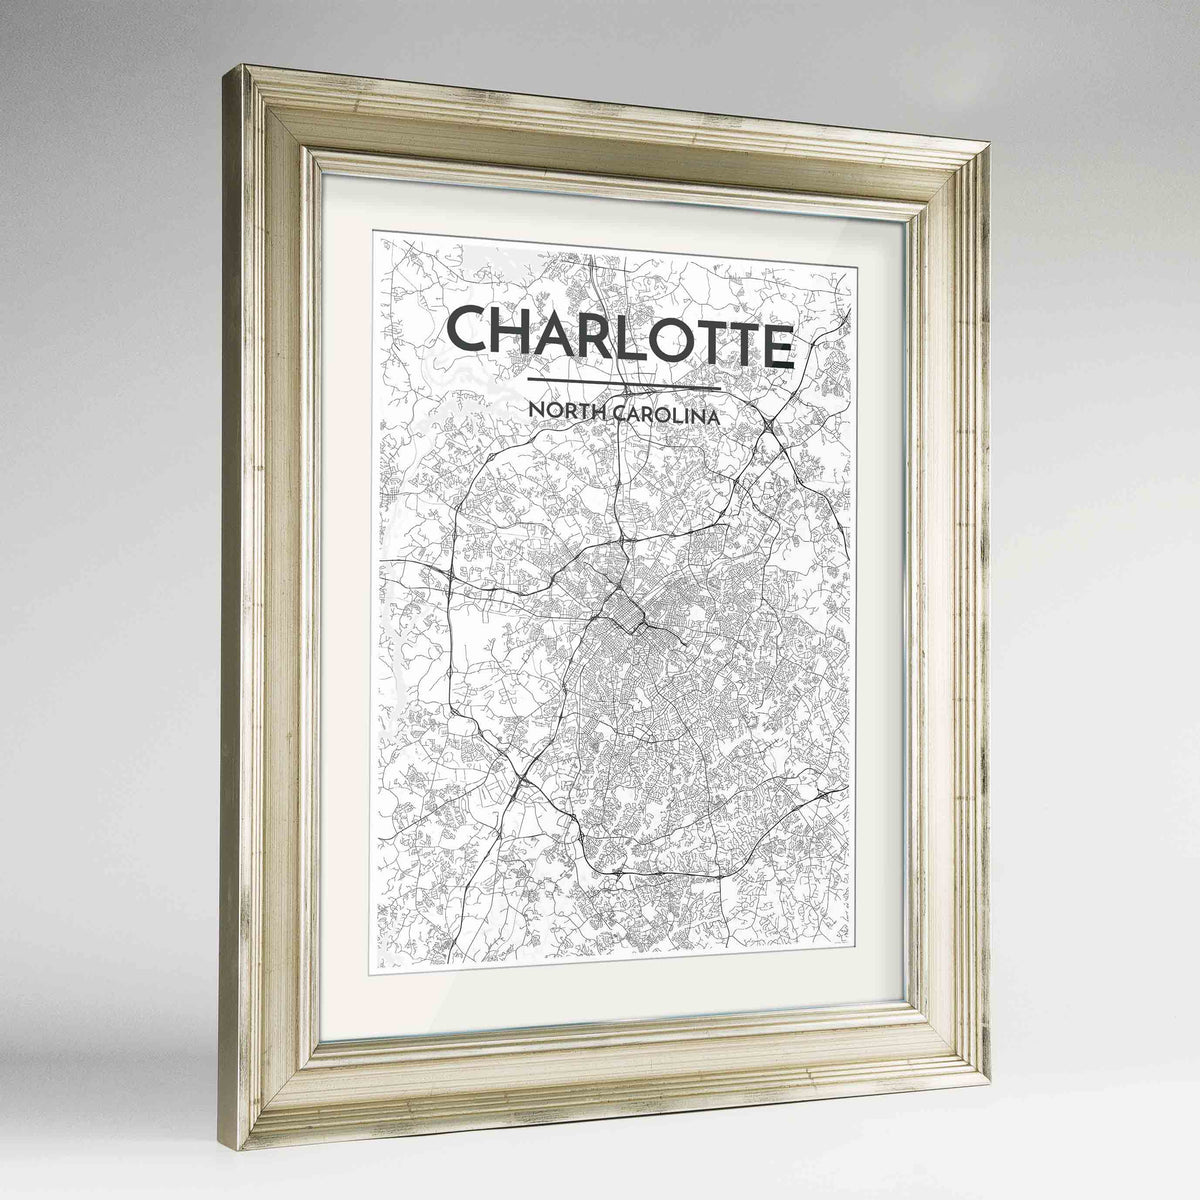 "Framed Charlotte Map Art Print 24x36"" Champagne frame Point Two Design Group"